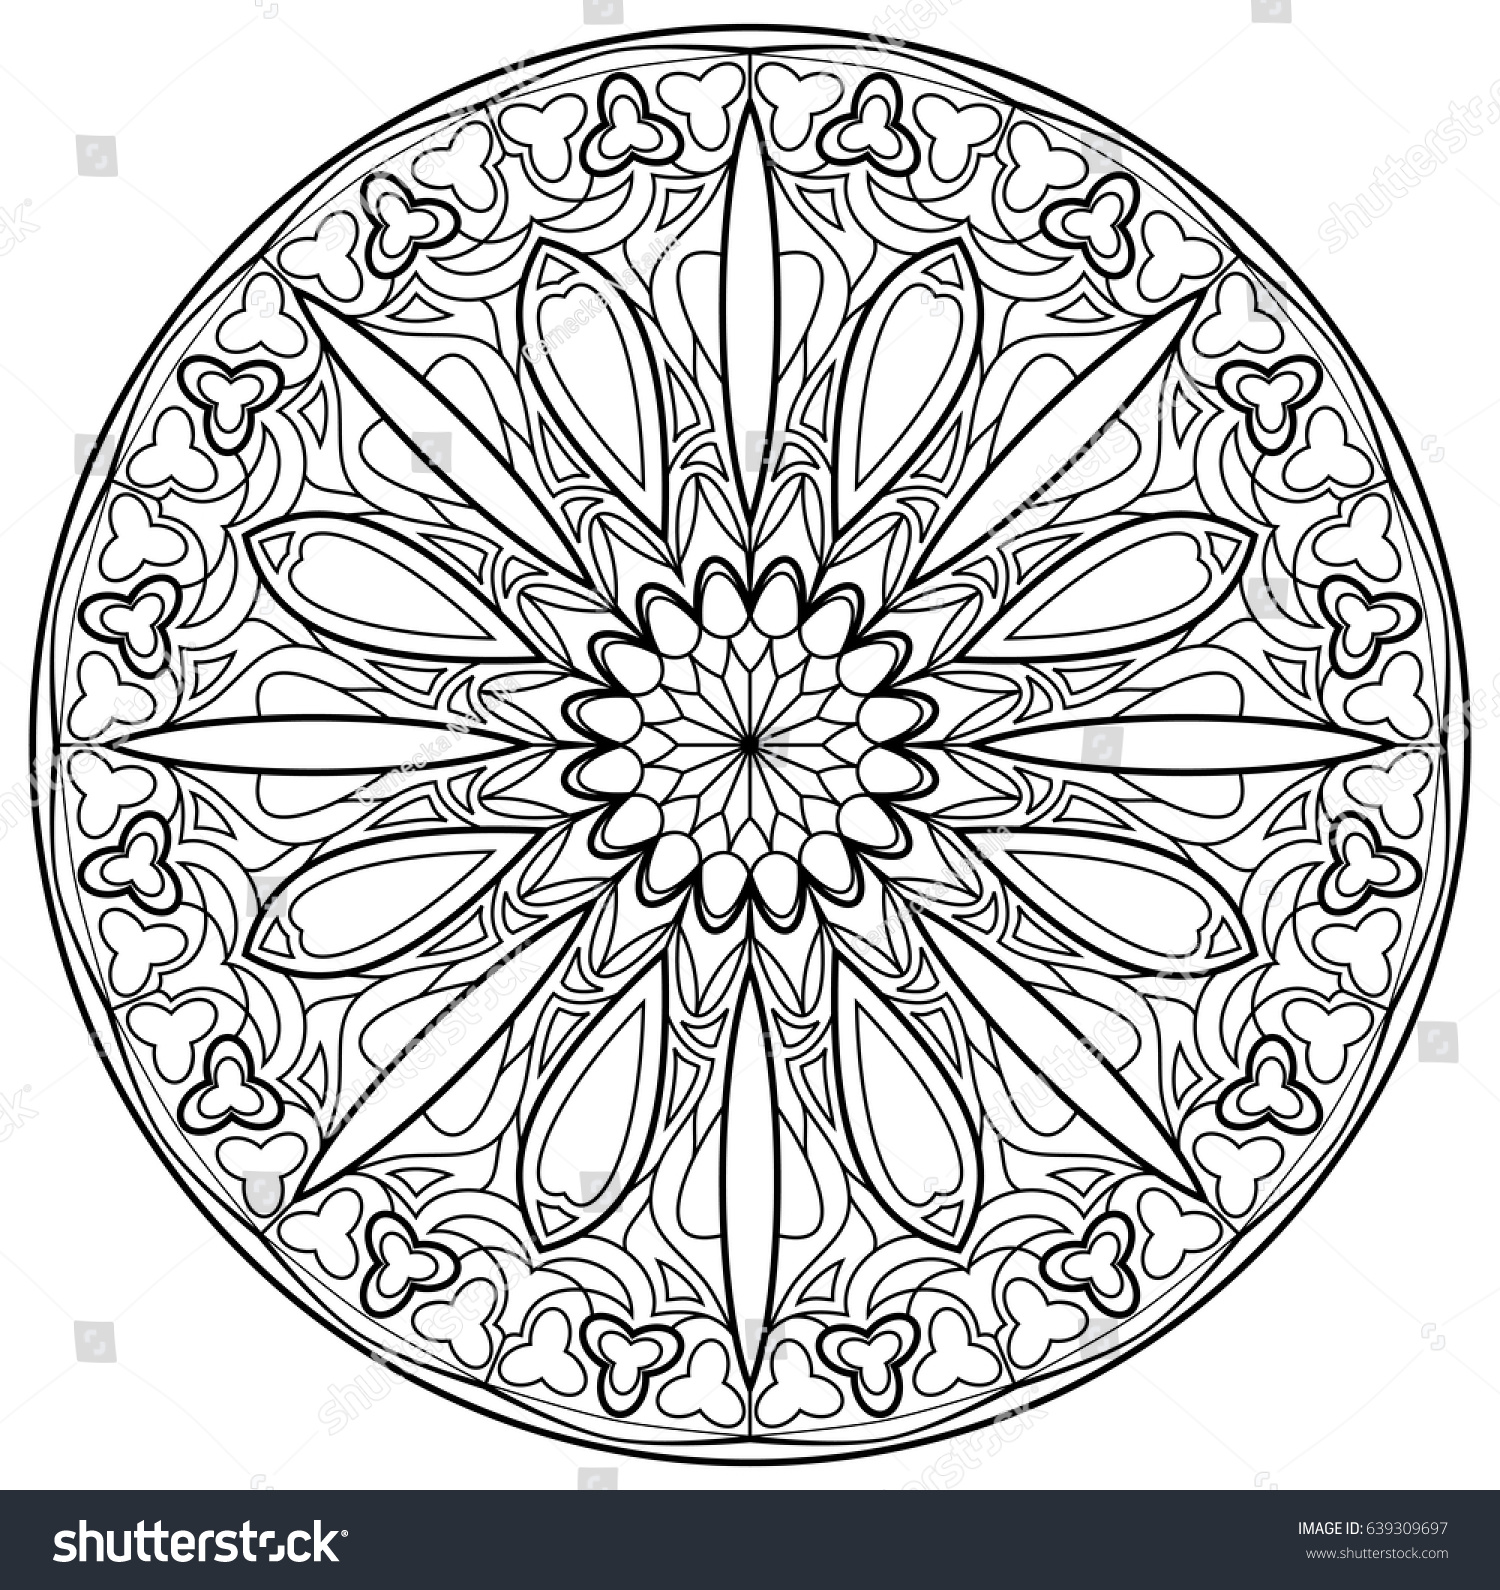 Black White Page Coloring Fantasy Drawing Stock Vector